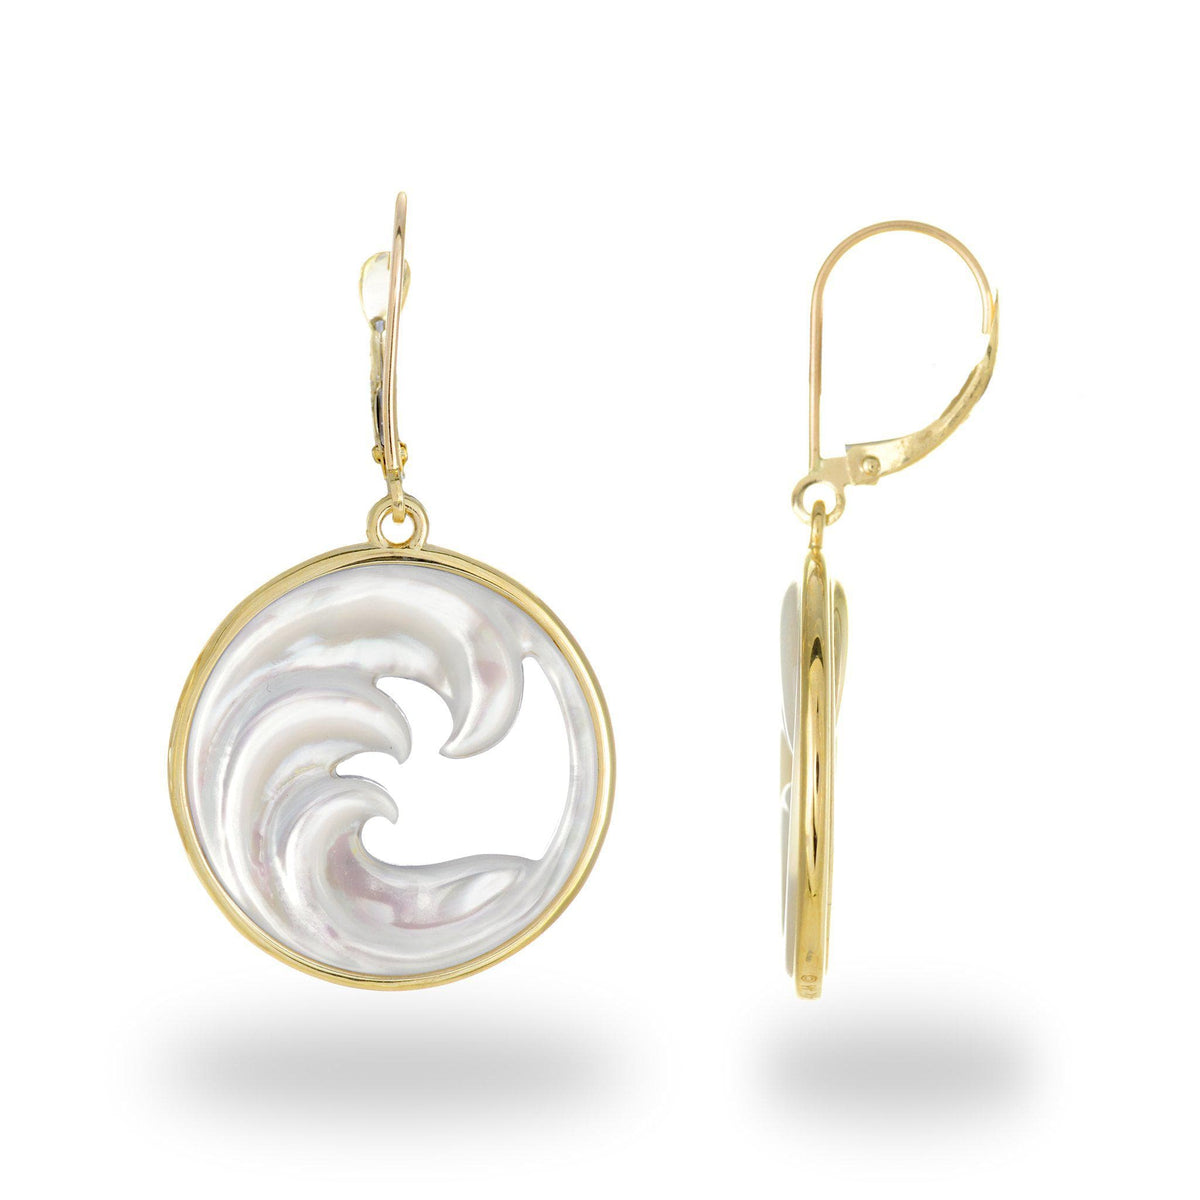 Nalu Mother of Pearl Earrings in Gold - 22mm-[SKU]